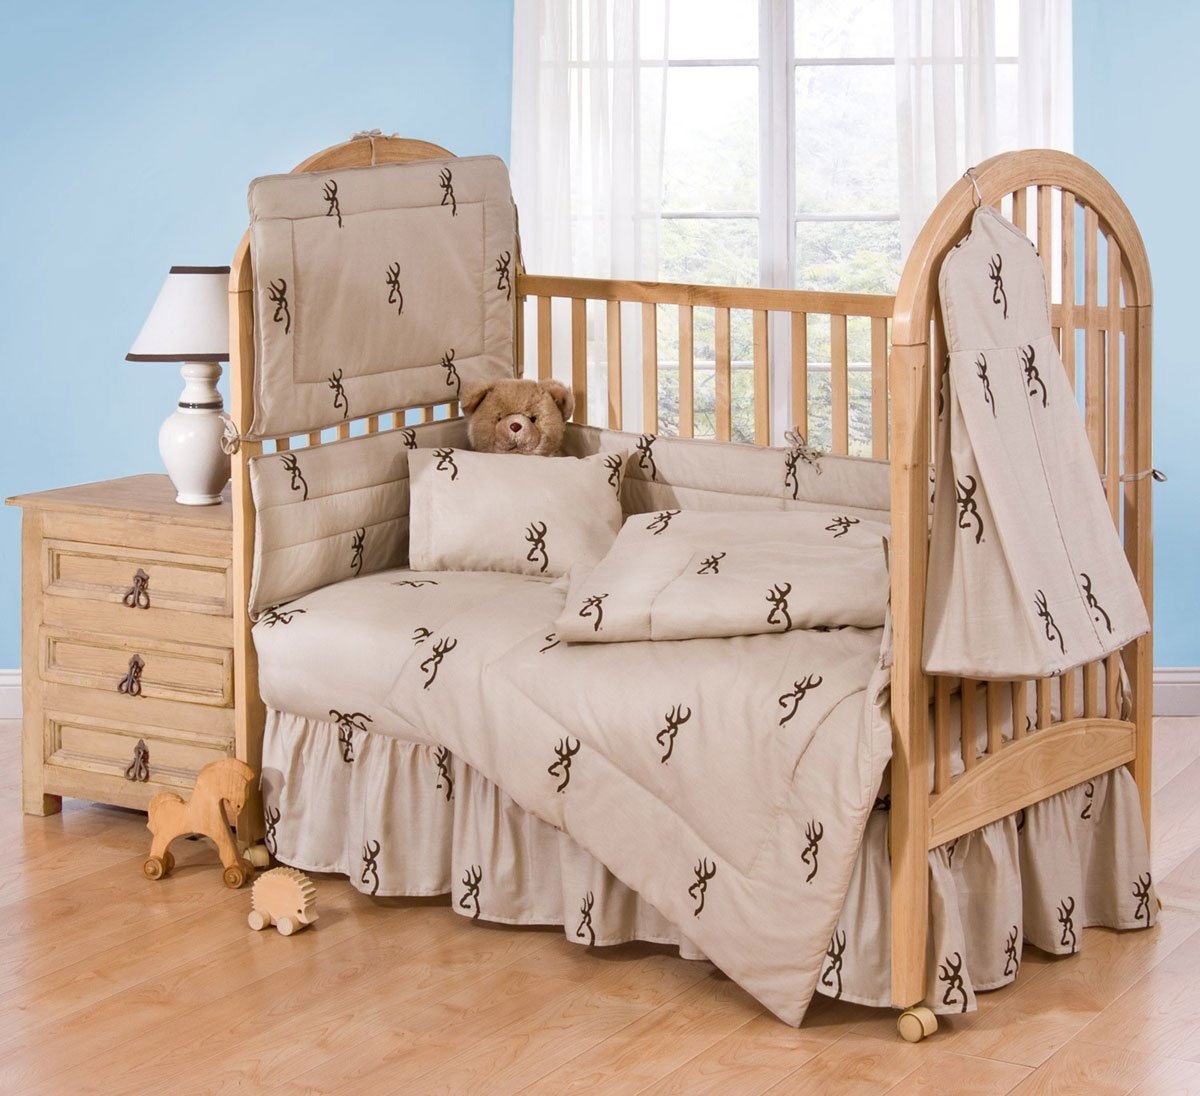 Buckmark 2 Piece Crib Bedding Set Color: Brown by Browning   B008ECG0RS